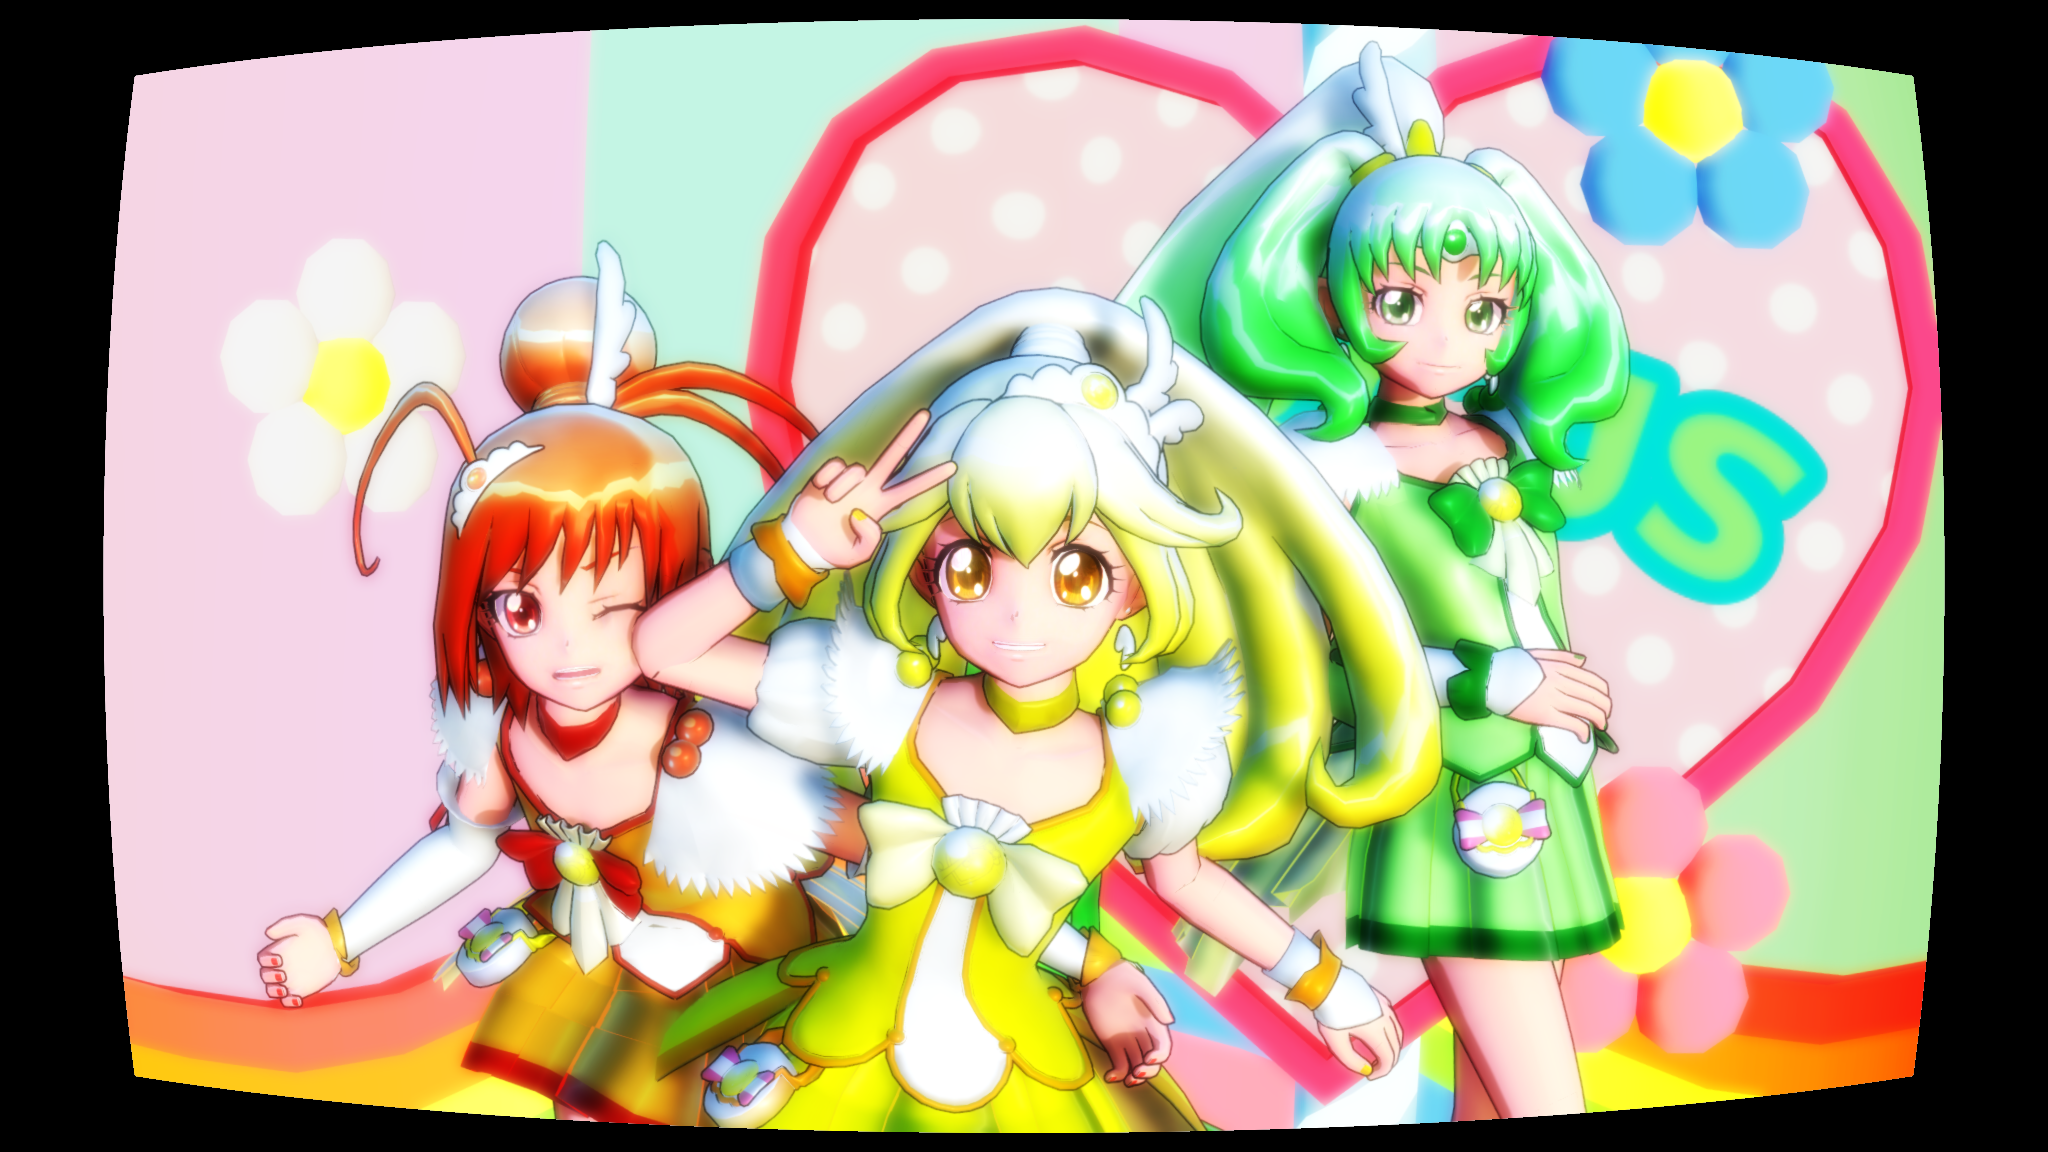 MMD] Glitter Force Umwhat is her name by Lucky3Seven on 2048x1152